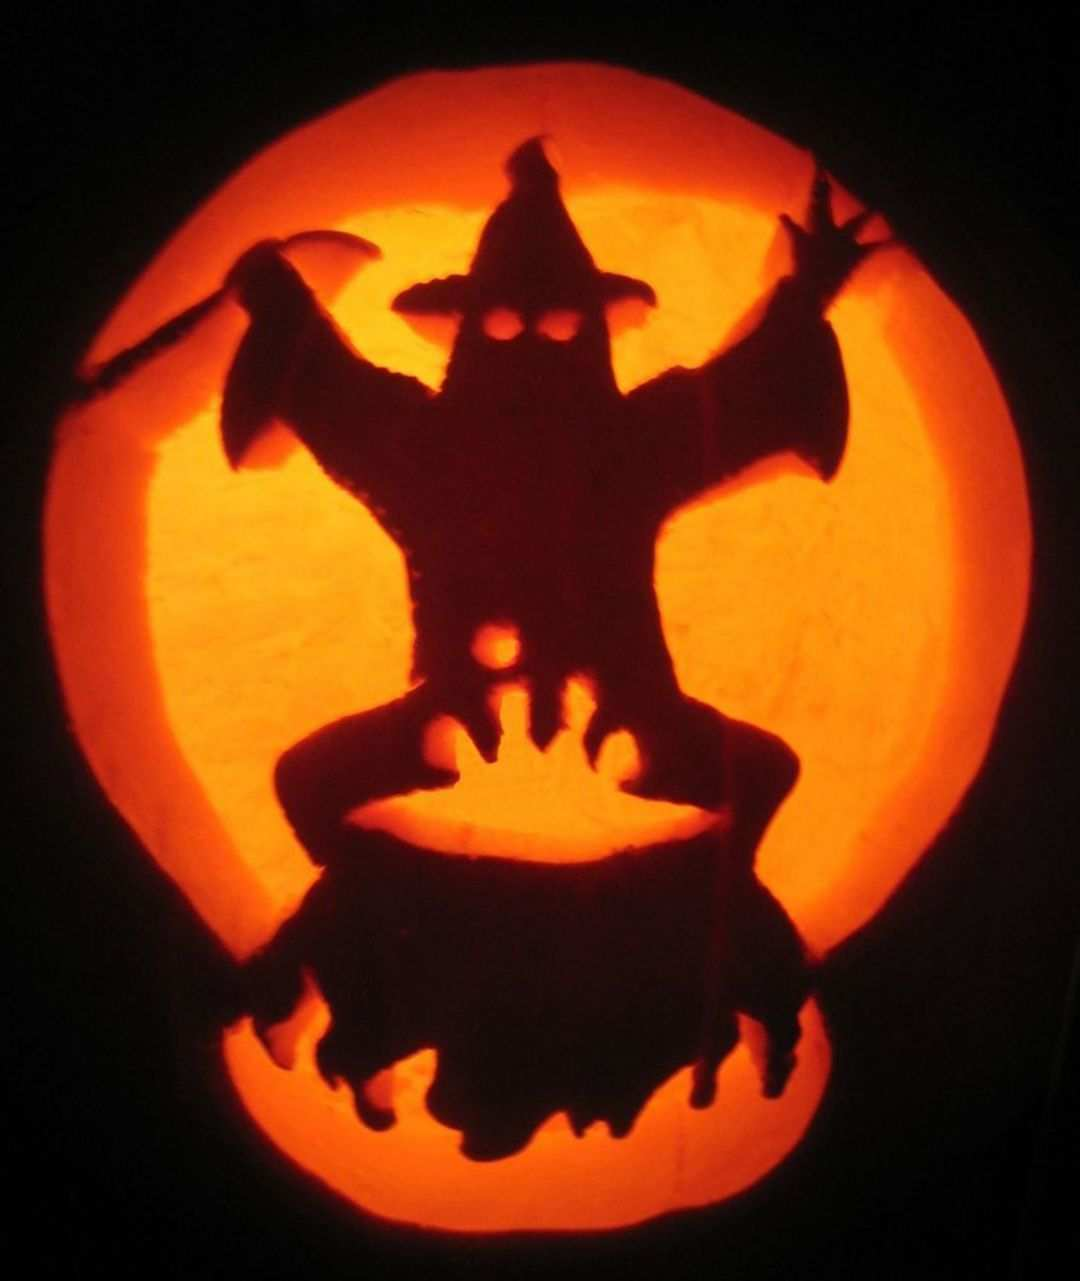 Easy And Amazing Pumpkin Carving Ideas 3521 Pumpkin Carving Designs Pumpkin Carving Templates Pumpkin Carving